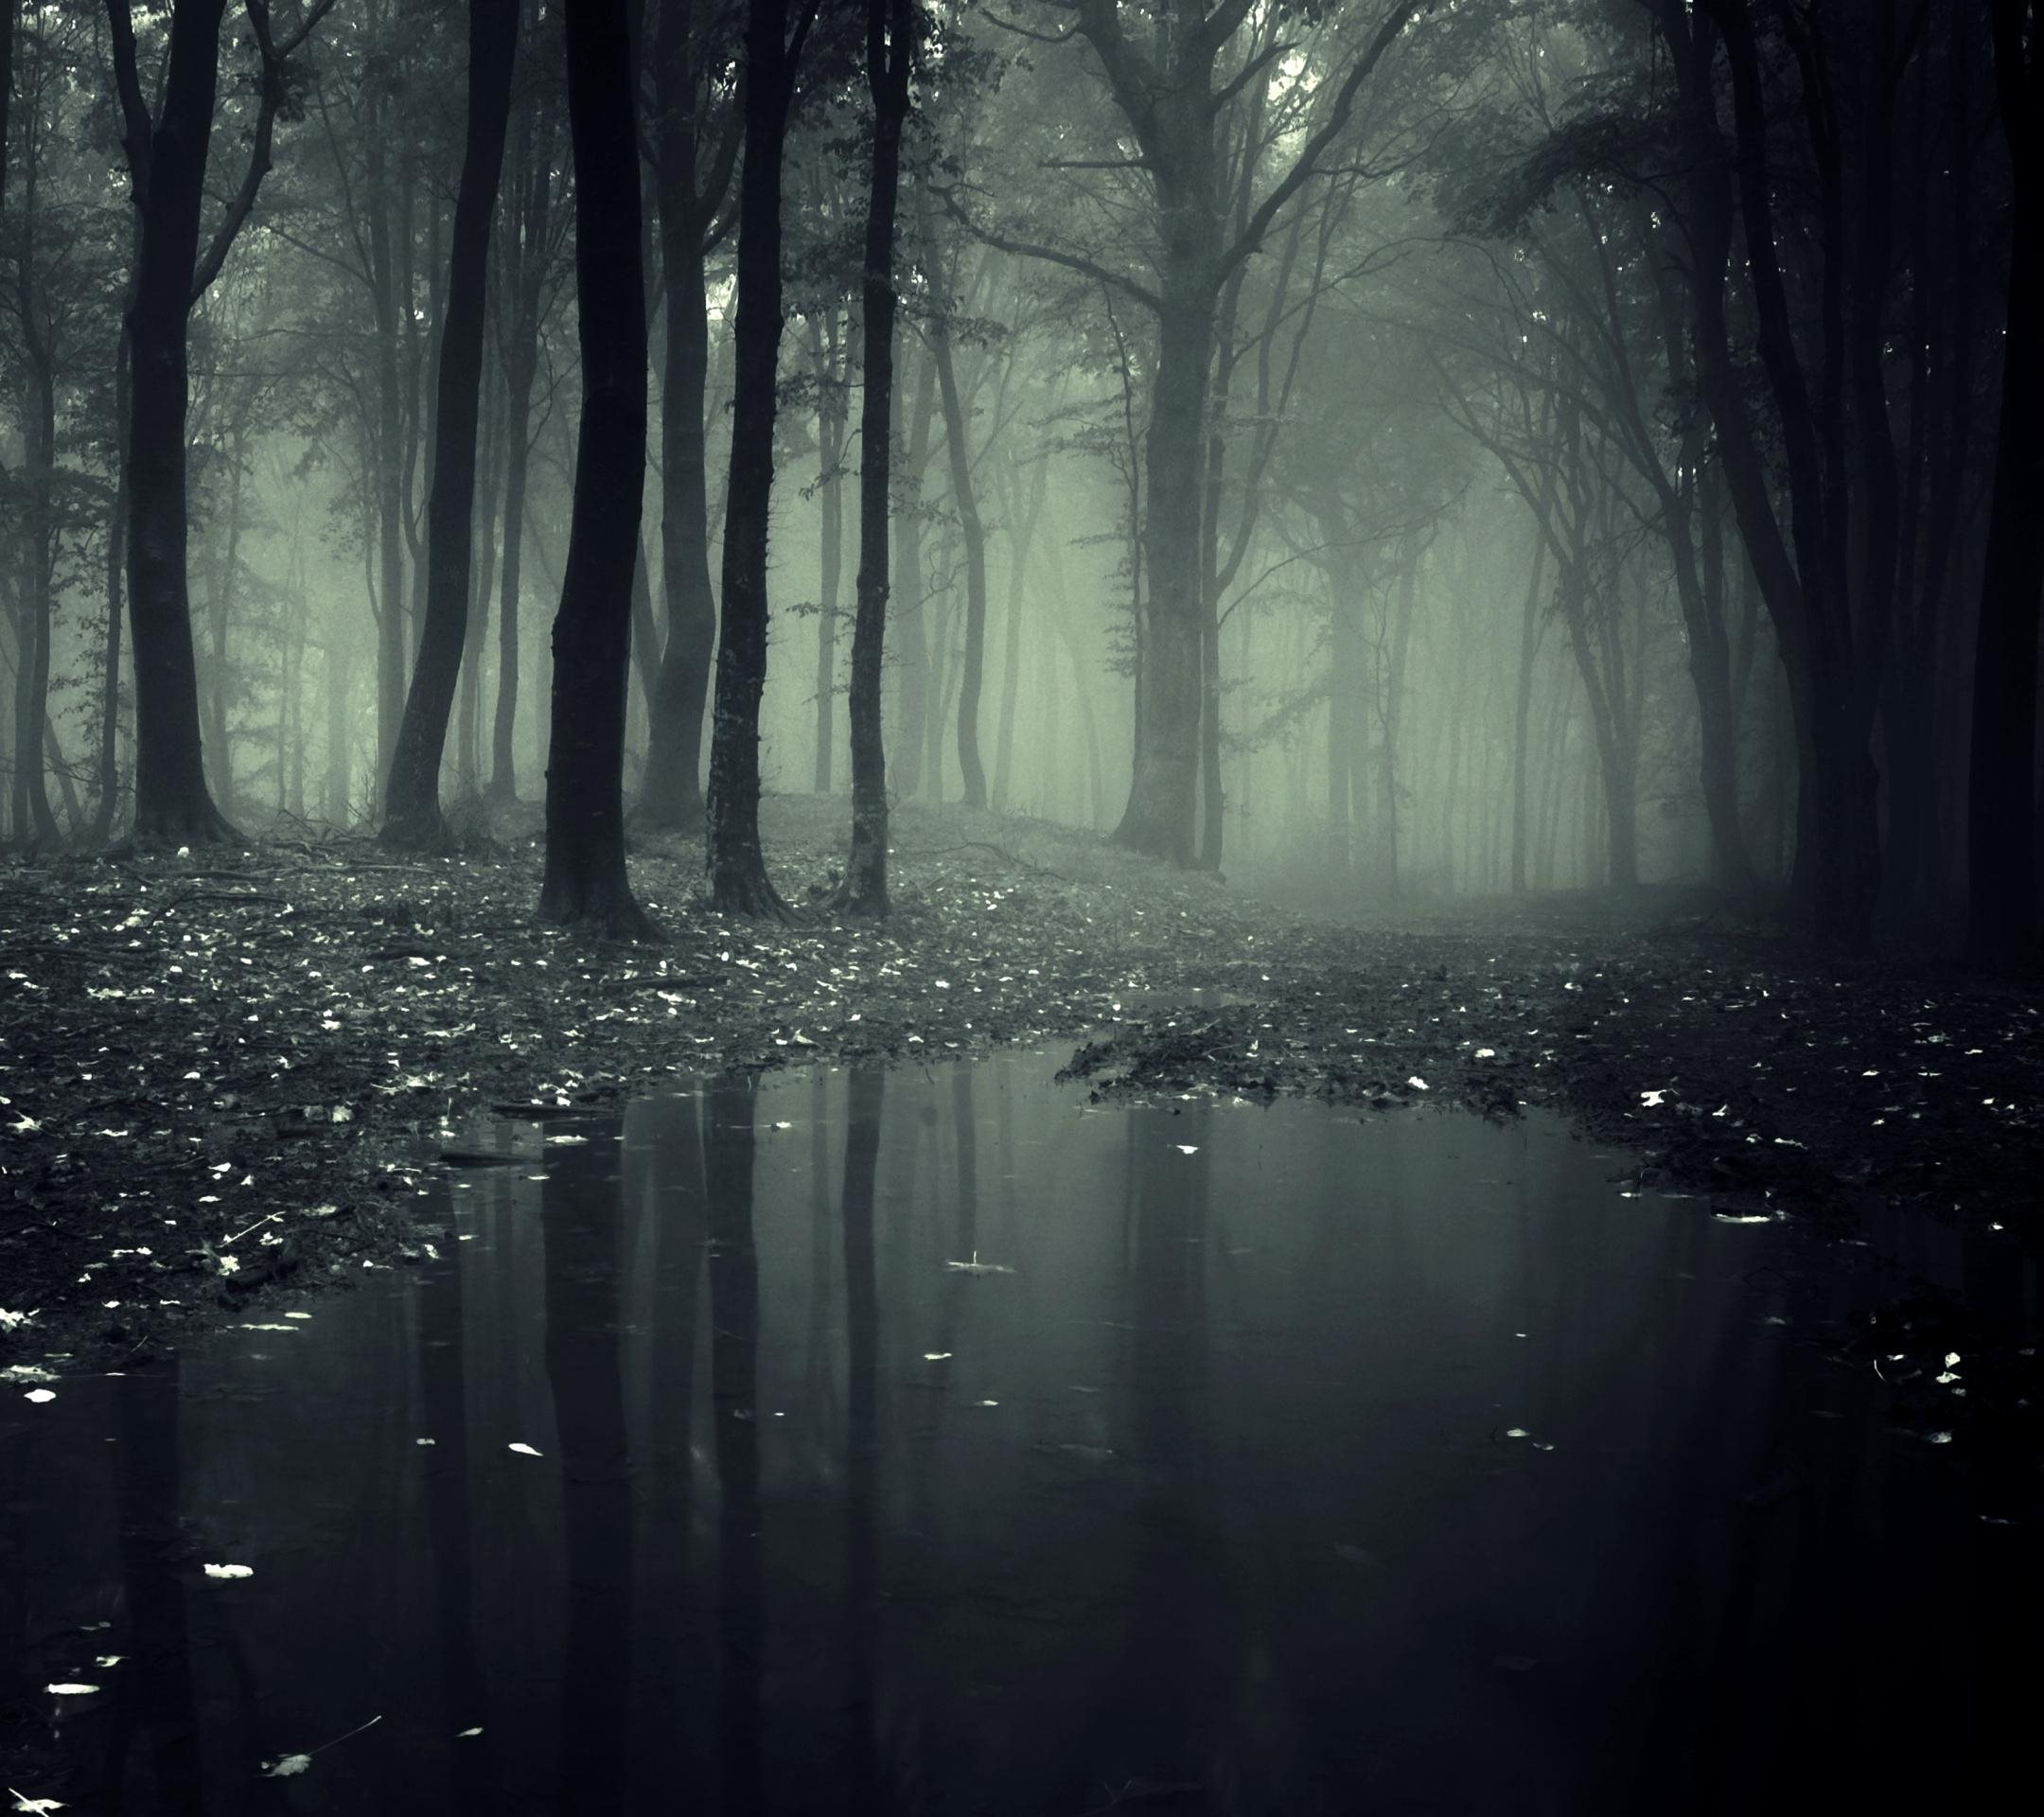 2160×1920 wallpaper: Creepy Forest